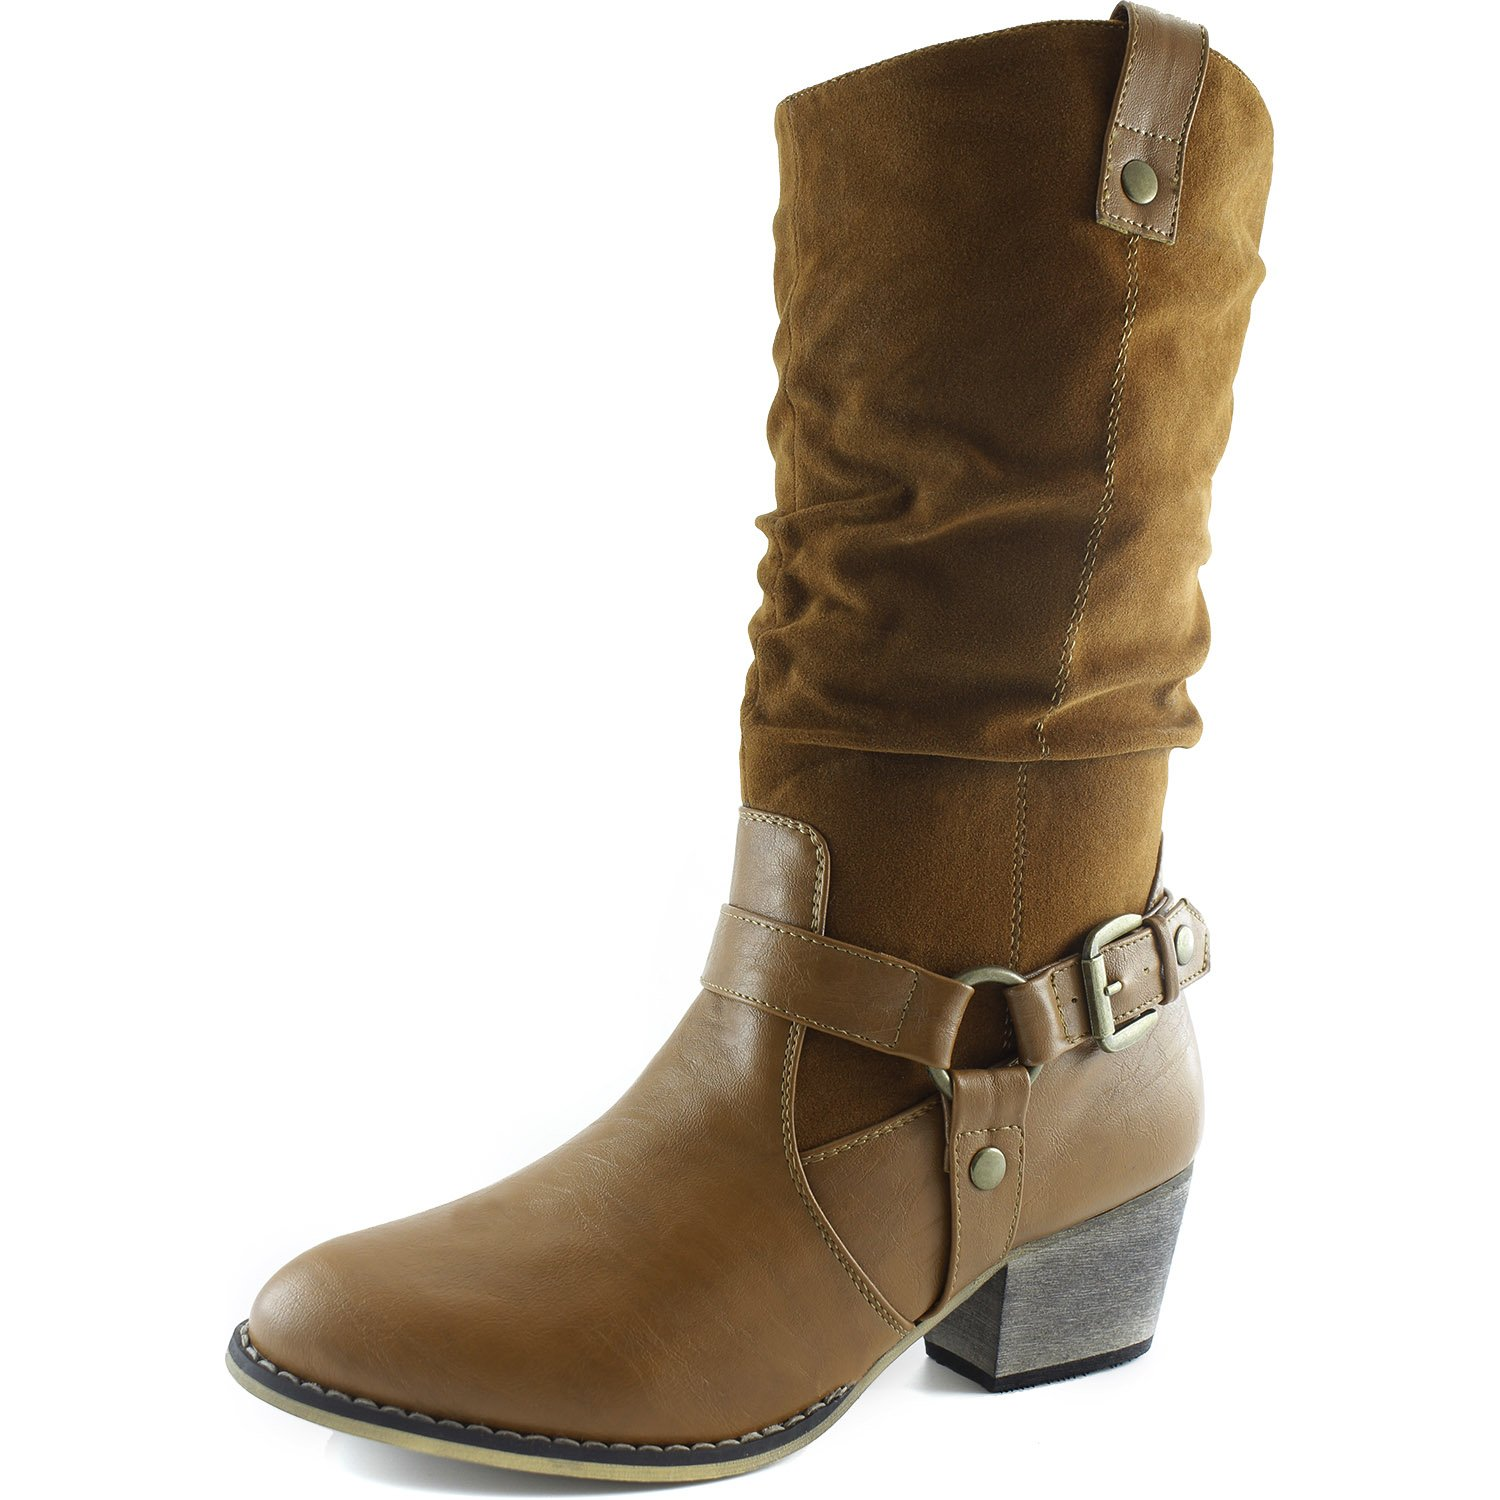 DailyShoes Women's Slouch Mid Calf Ankle Strap Buckle Style Cowboy Boots, 8.5